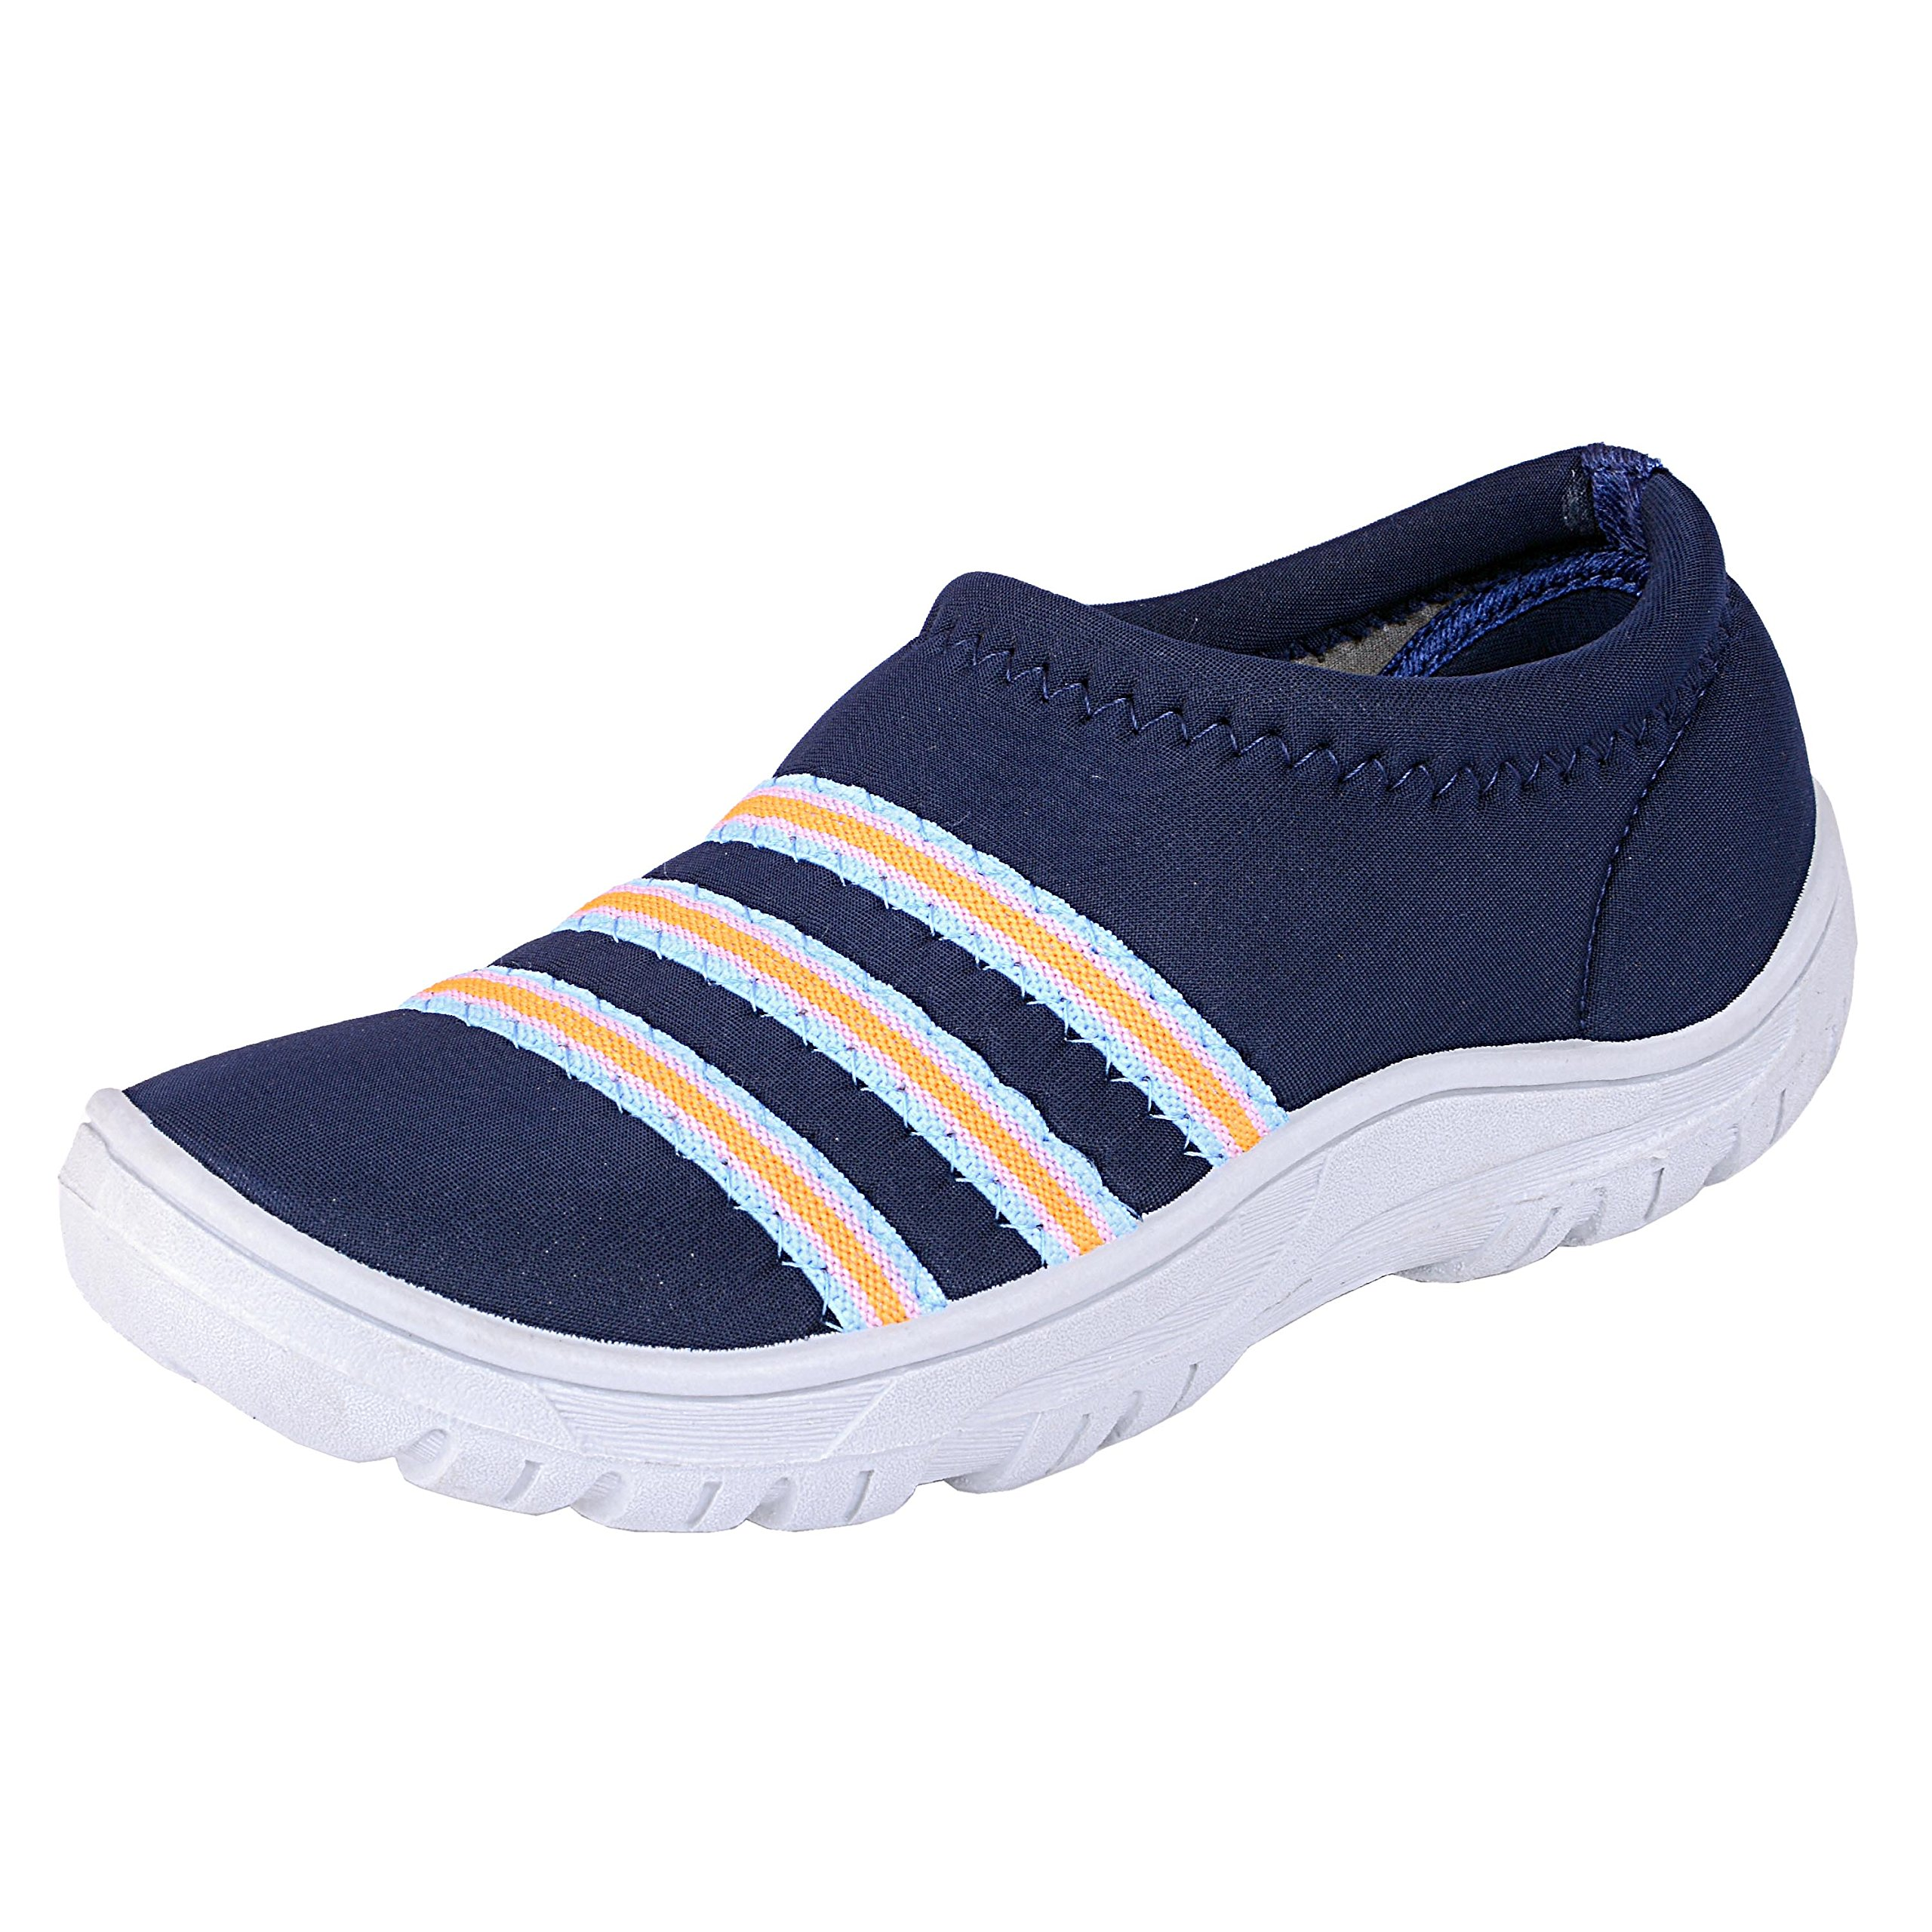 Liberty Women Super Soft Shoes